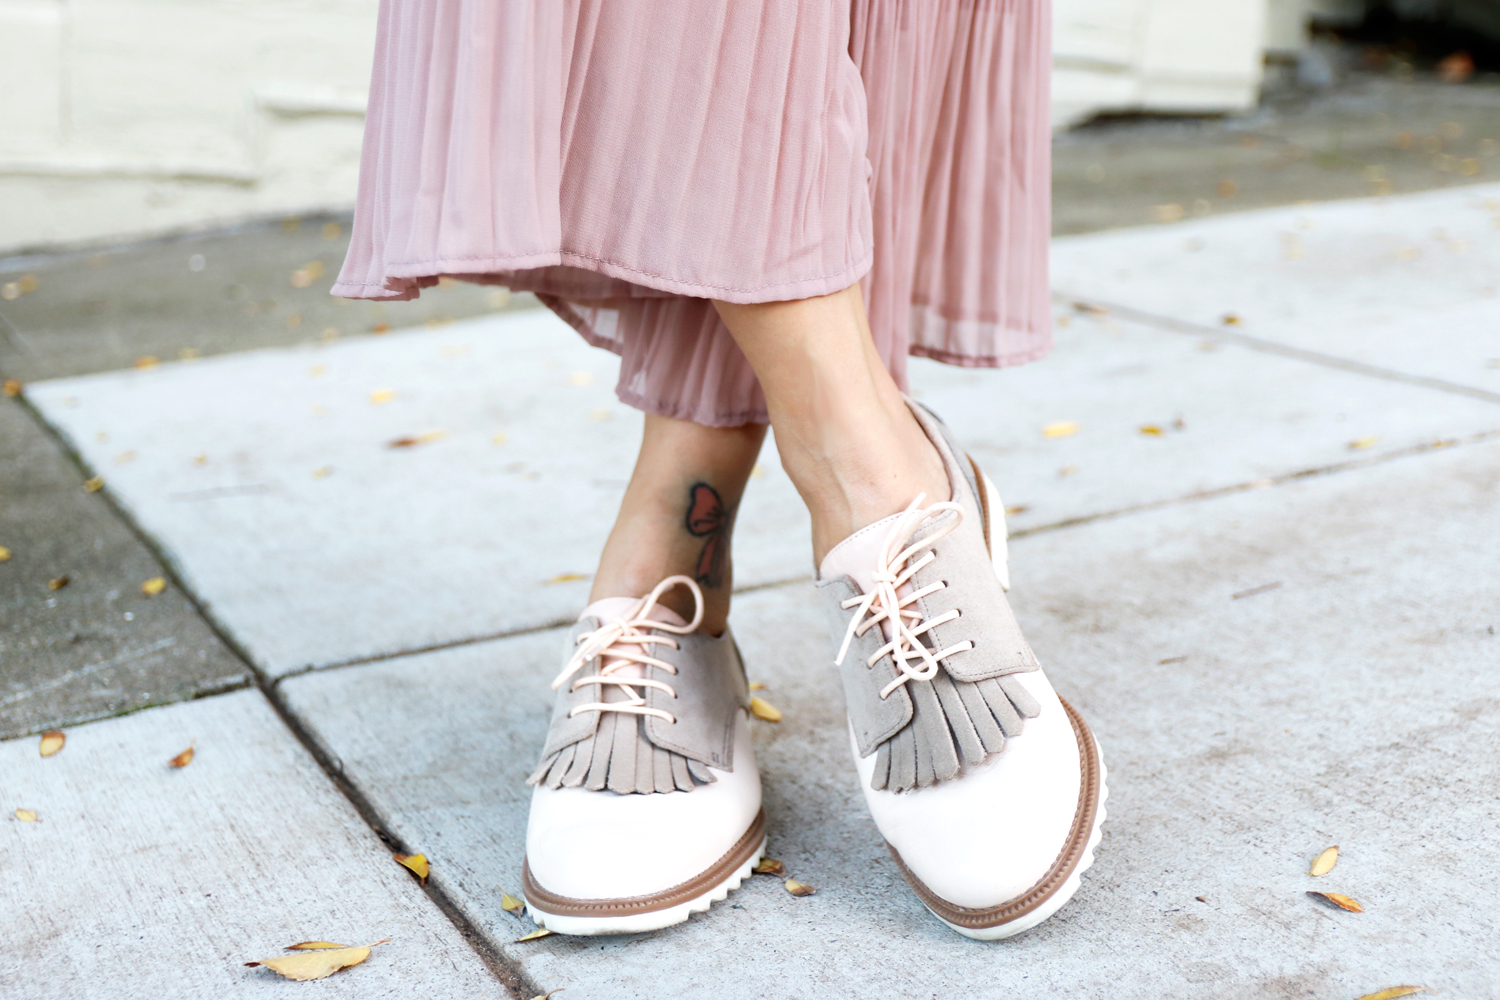 09holiday-neutral-pastel-oxfords-fringes-clarks-sf-sanfrancisco-fashion-style